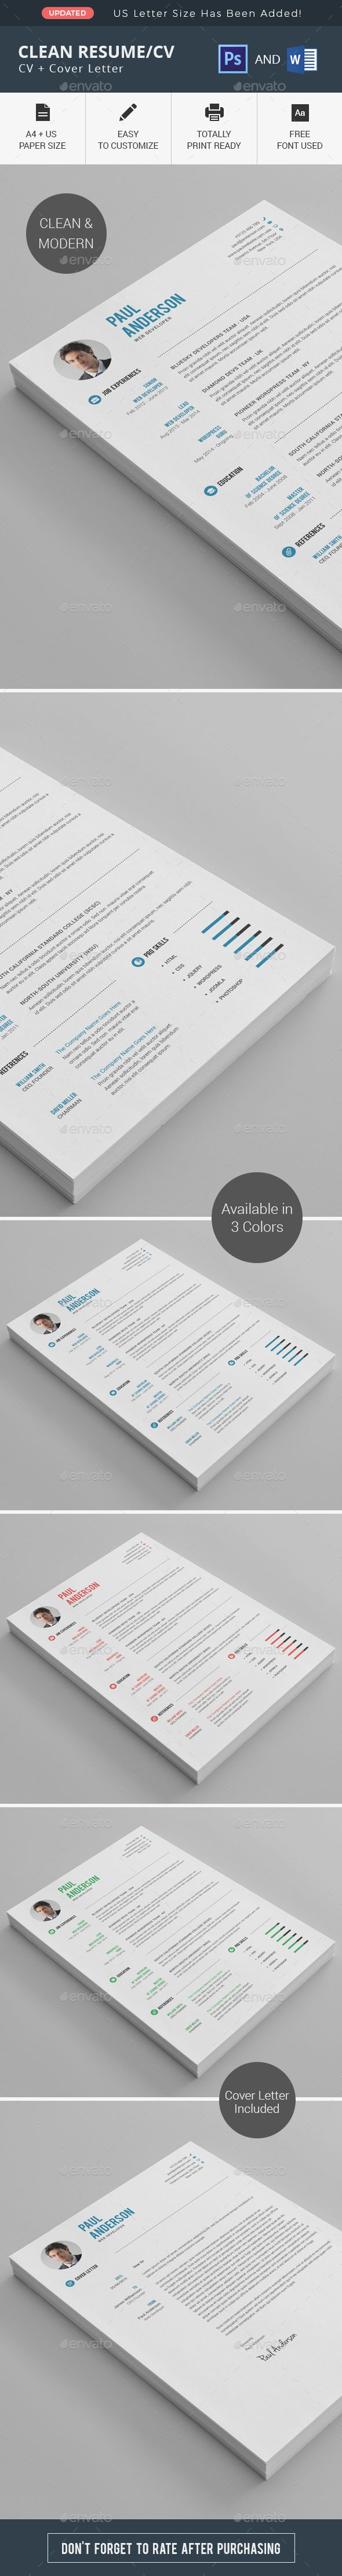 Clean Resume/CV - Resumes Stationery: Hi there, this is a Perfect Resume/CV Template for you! This template is Super Easy to Edit. Some Detailed Instructions will really help you to edit the files. You'll get the instructions in the Downloaded file. Hope it'll be helpful to make a Great Impression. #curriculum #resume #layout